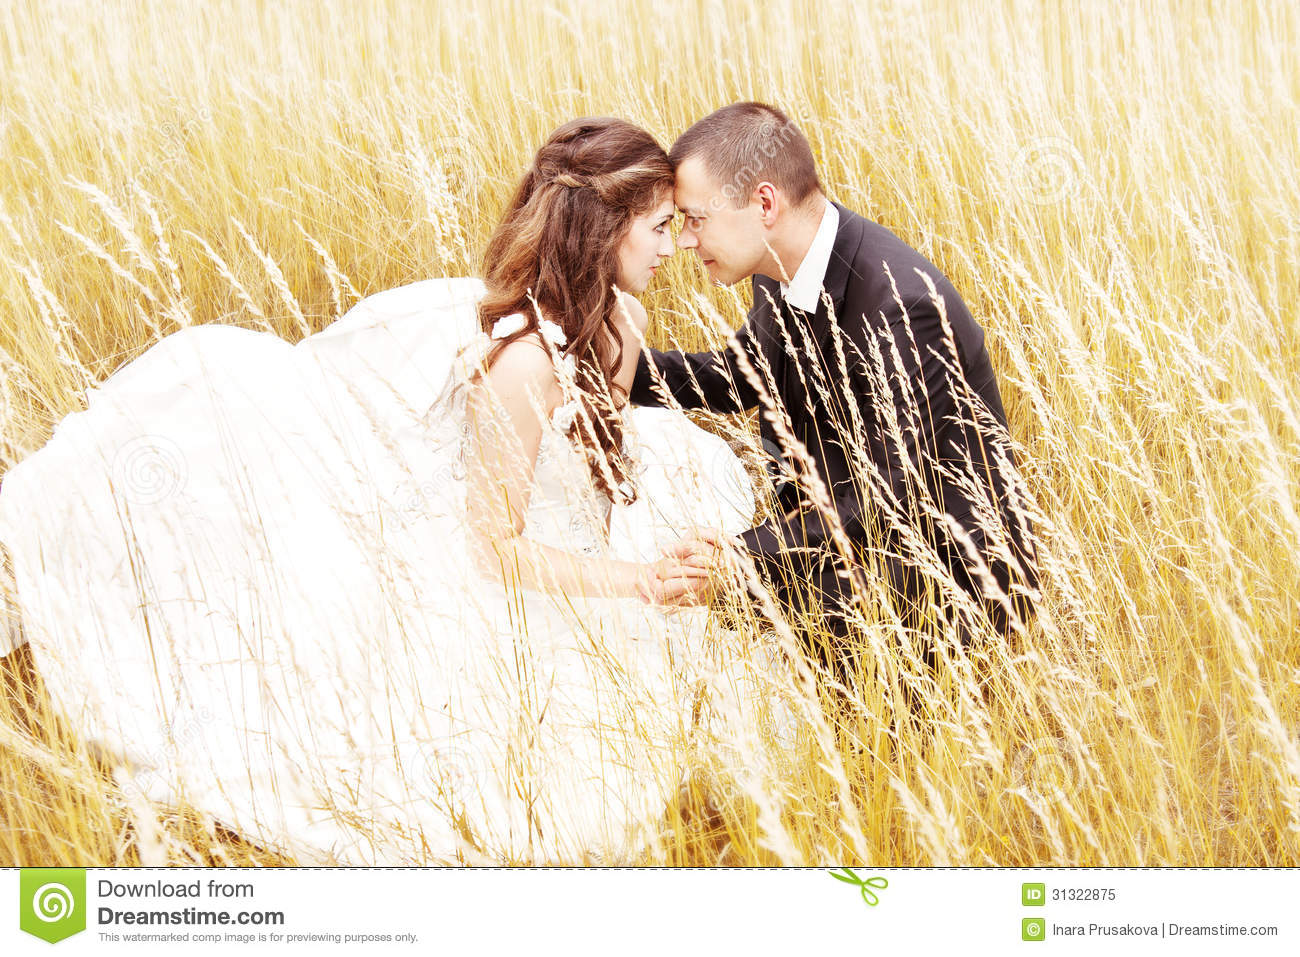 Wedding couple in grass. Bride and groom outdoors